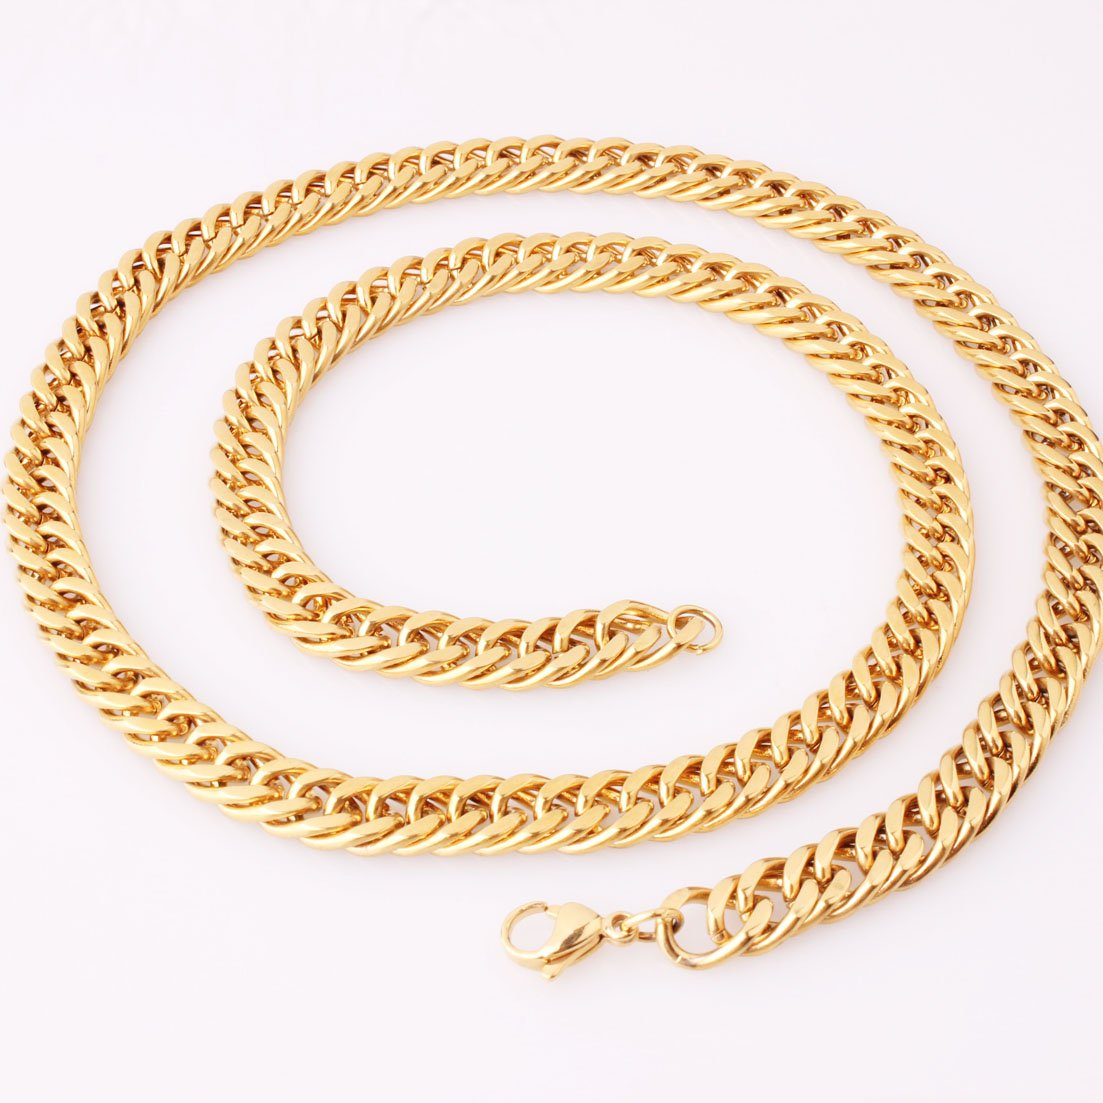 8mm Gold Plated Stainless Steel Cuban Curb Link Chain Men Necklace 16-40